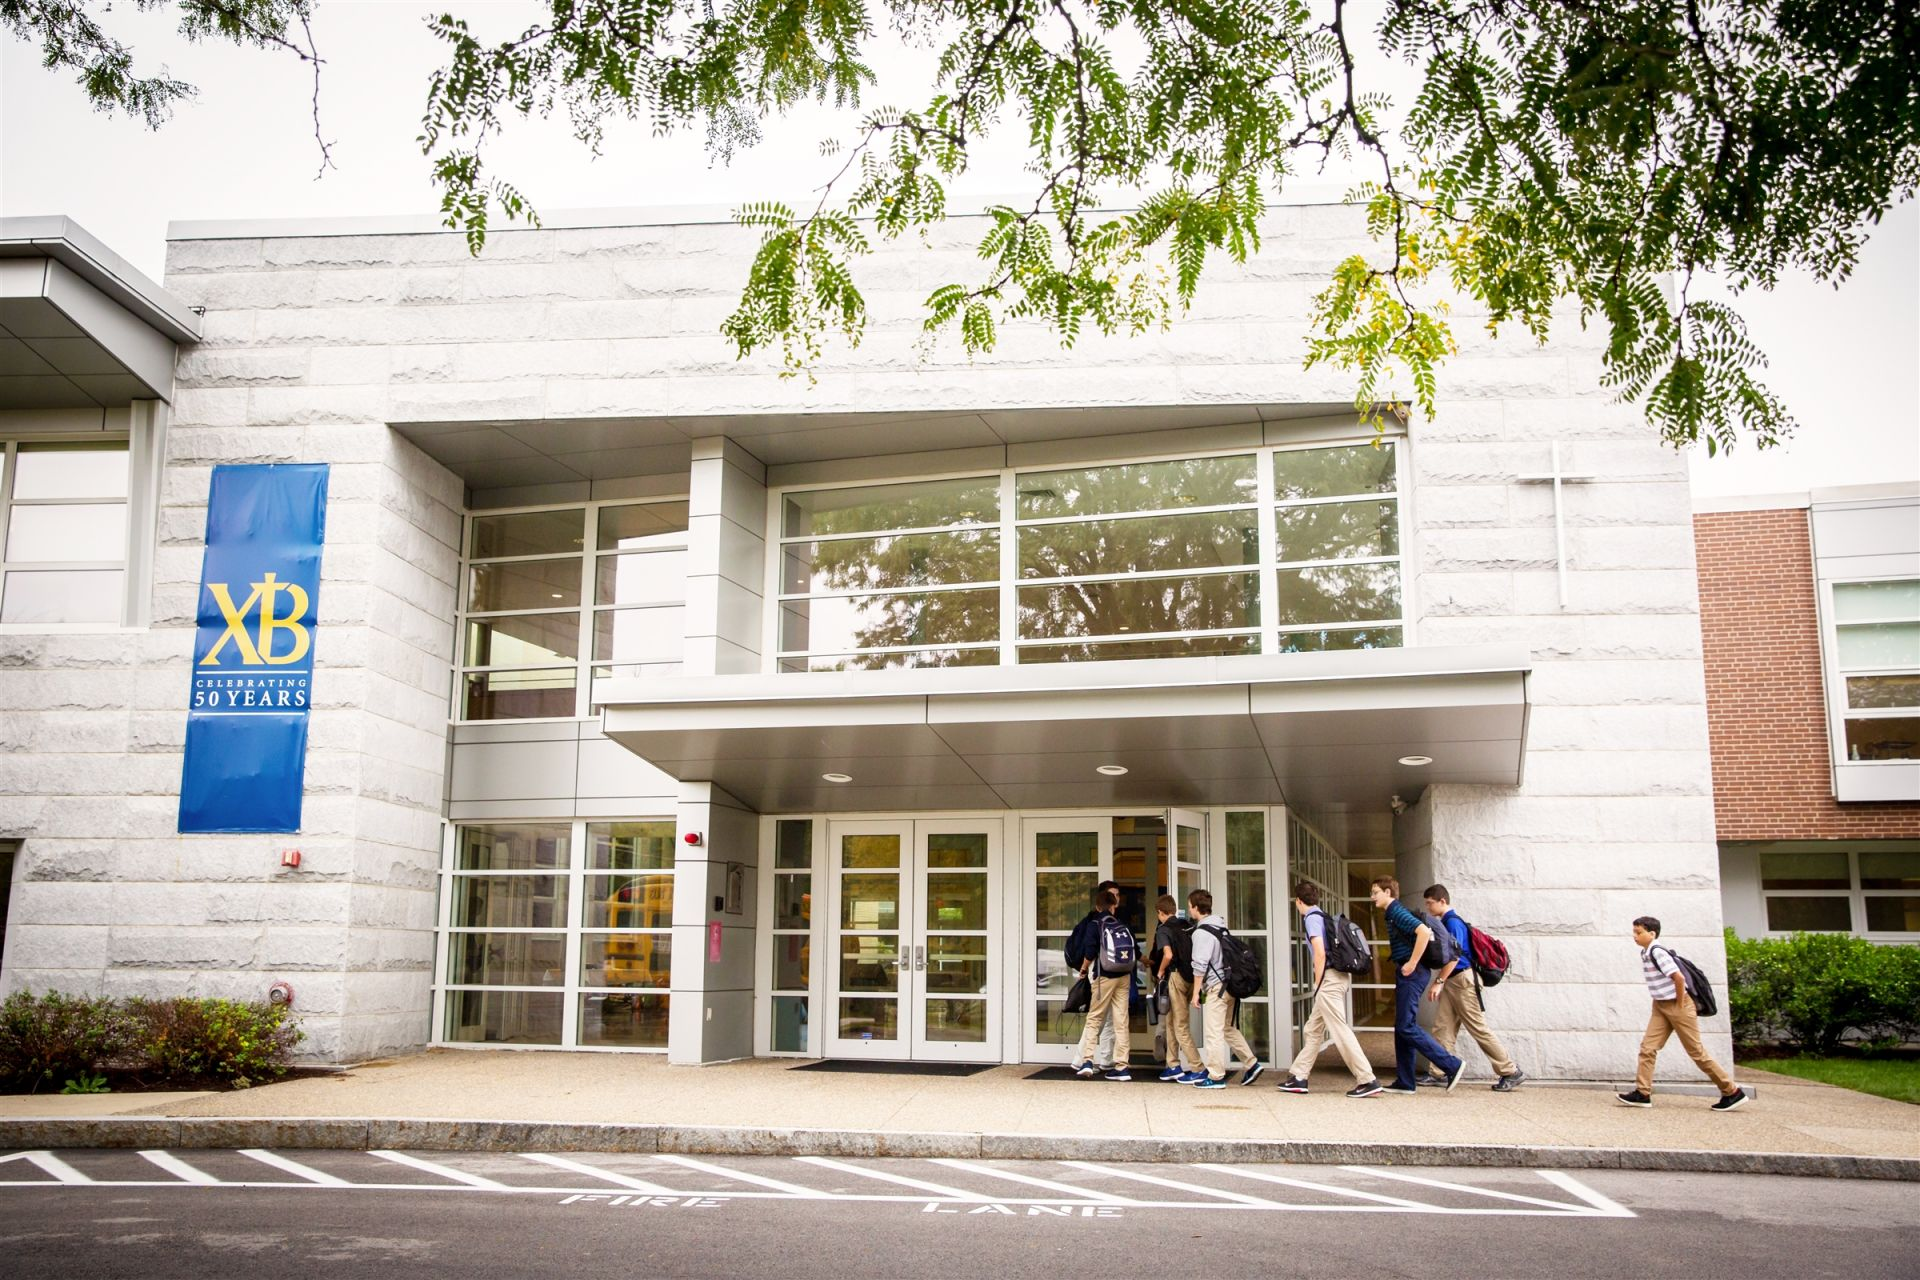 Buses transport students from 17 stops to the Bisson Foyer each morning. The 34E MBTA bus also stops here daily, and the Islington commuter rail station is less than a mile's walk from campus.